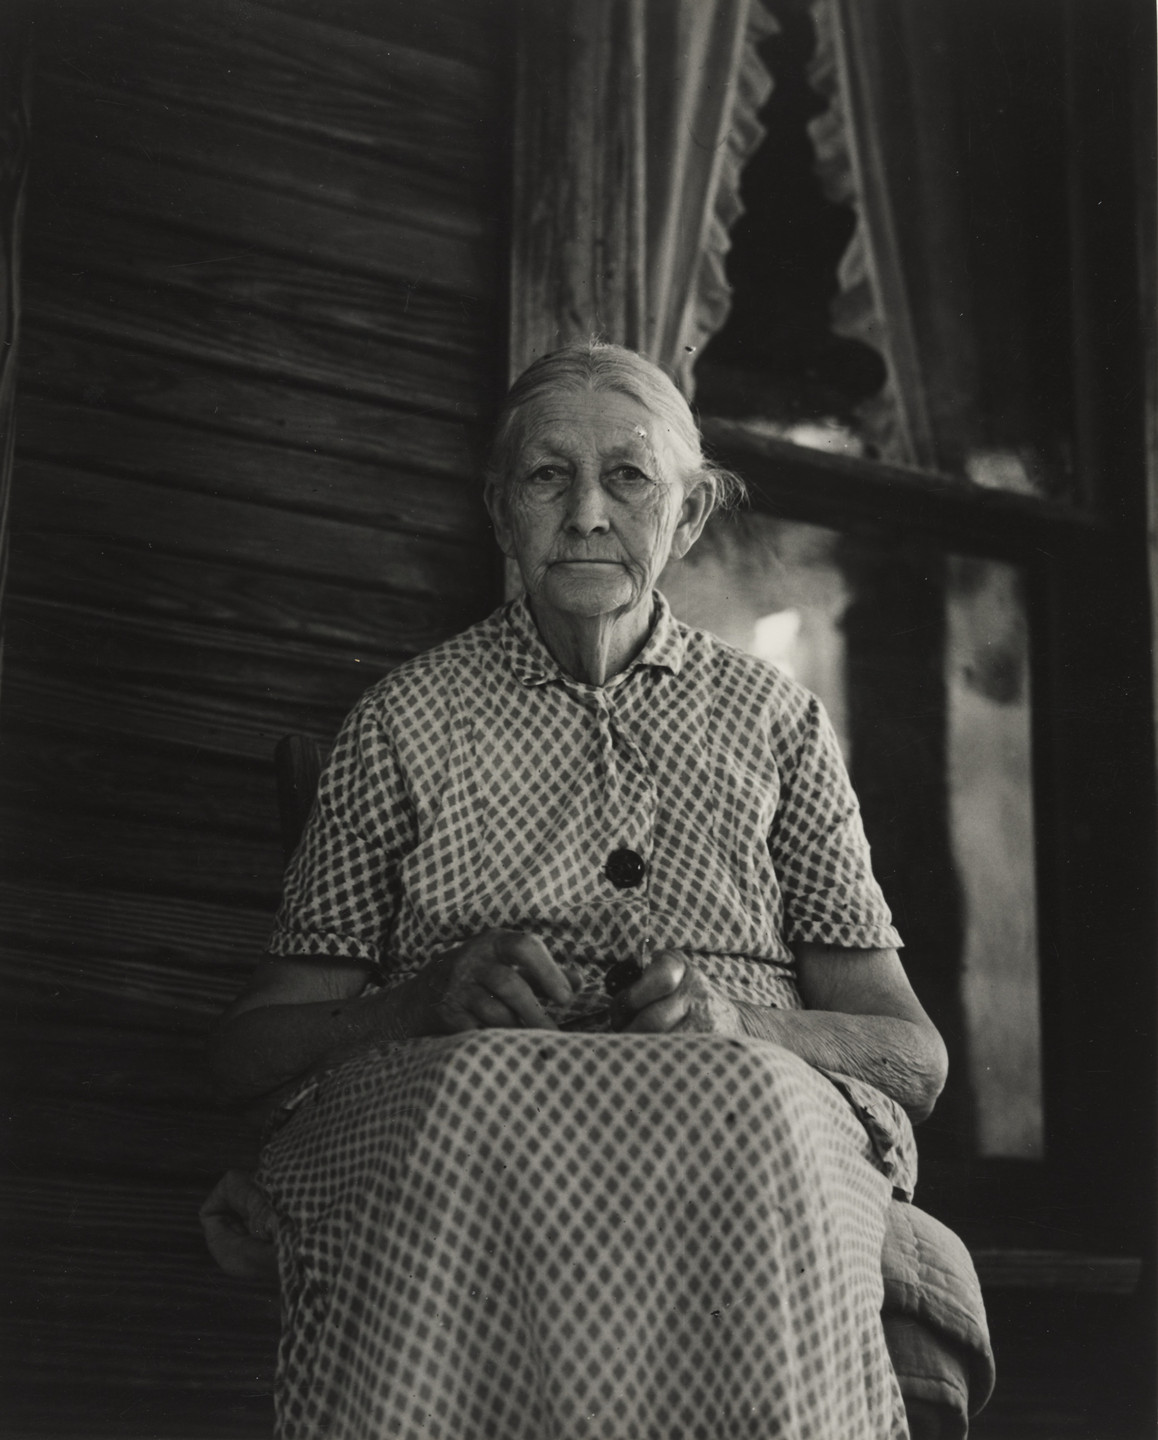 Dorothea Lange. Ma Burnham, Conroy, Arkansas. June 1938